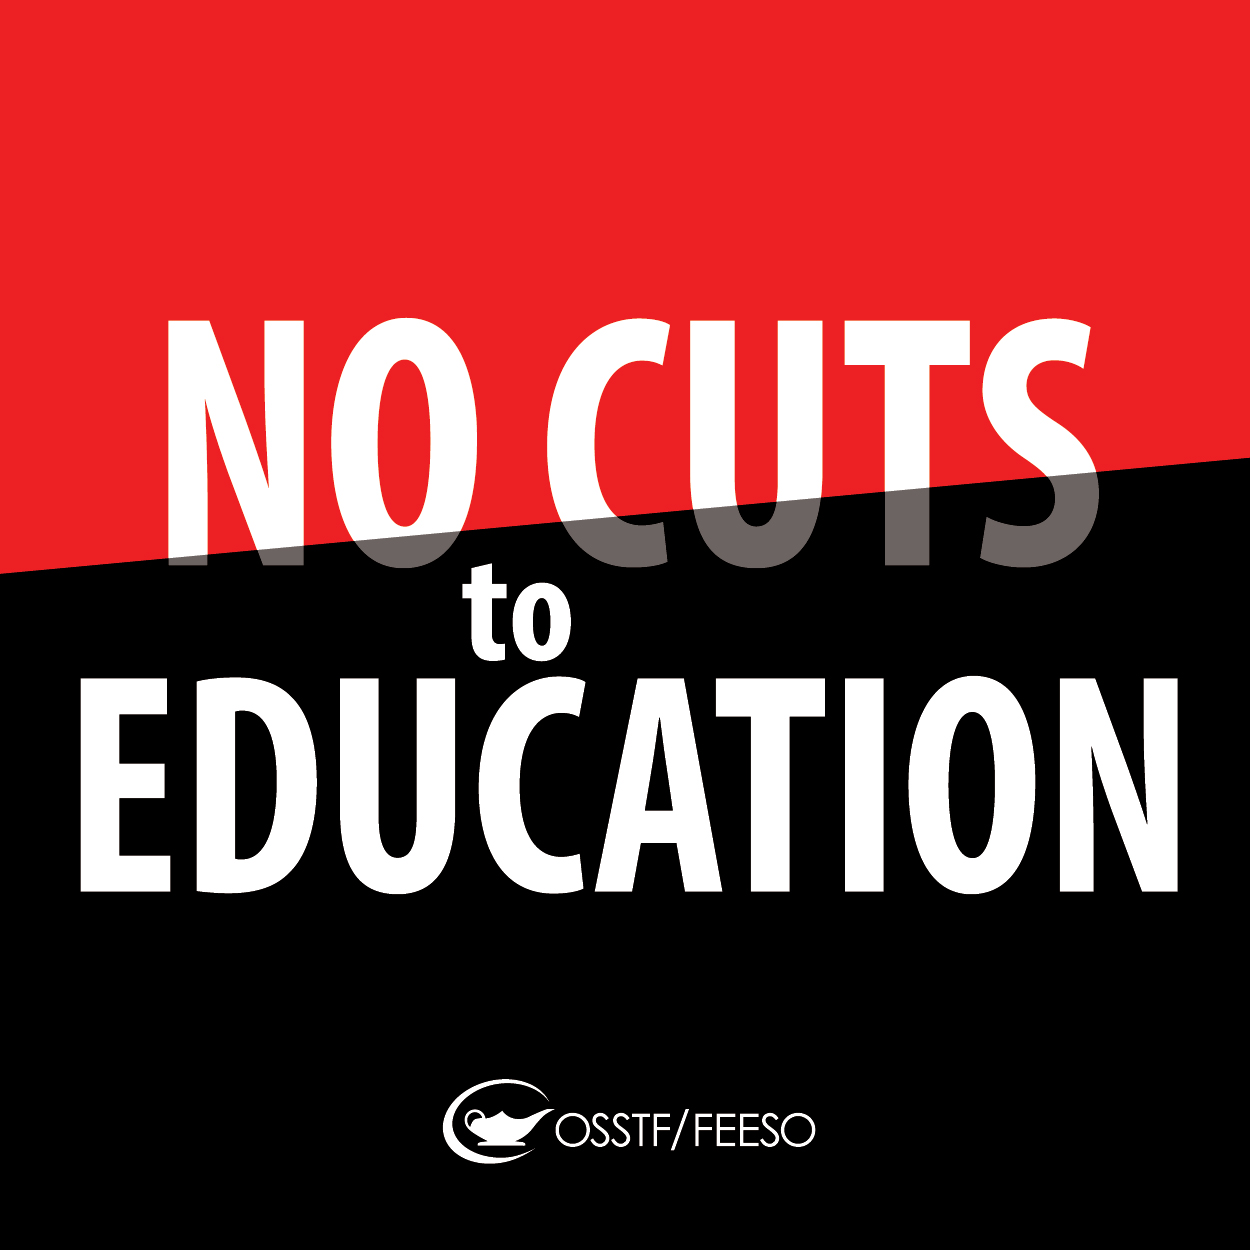 No Cuts to Education by OSSTF/FEESO